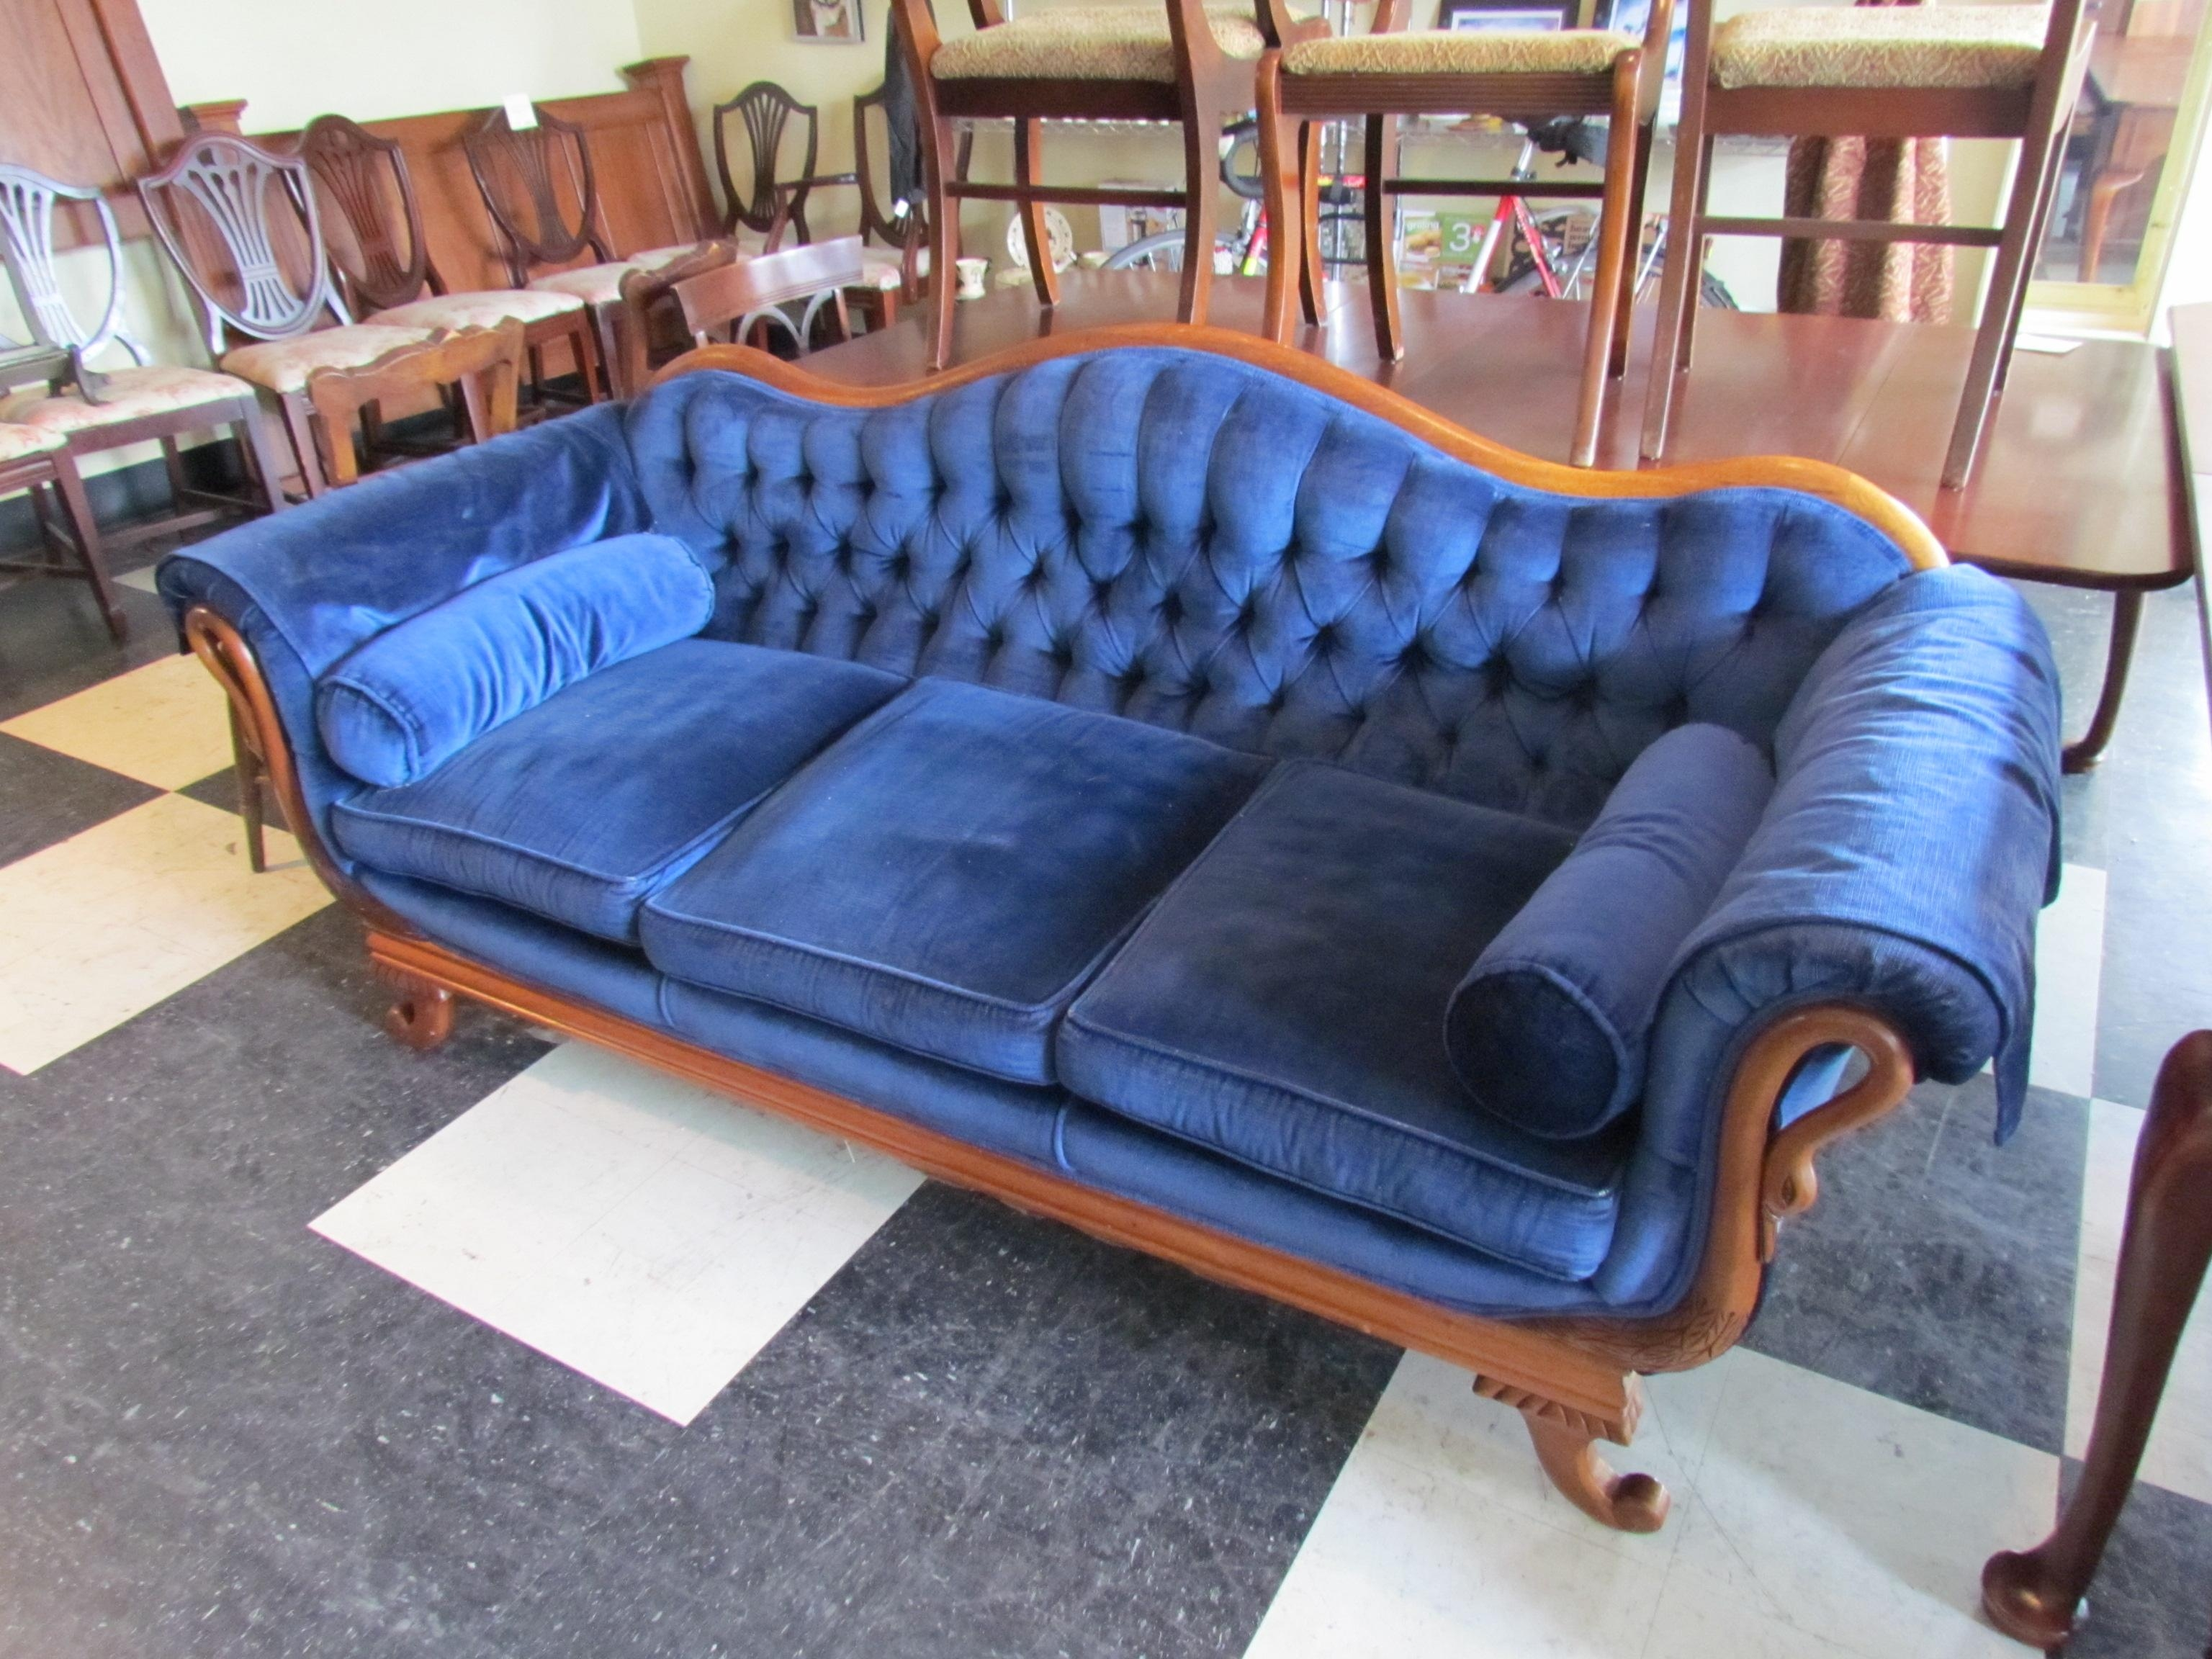 Fresh Great Peacock Blue Tufted Sofa #11131 Within Blue Tufted Sofas (Image 7 of 22)